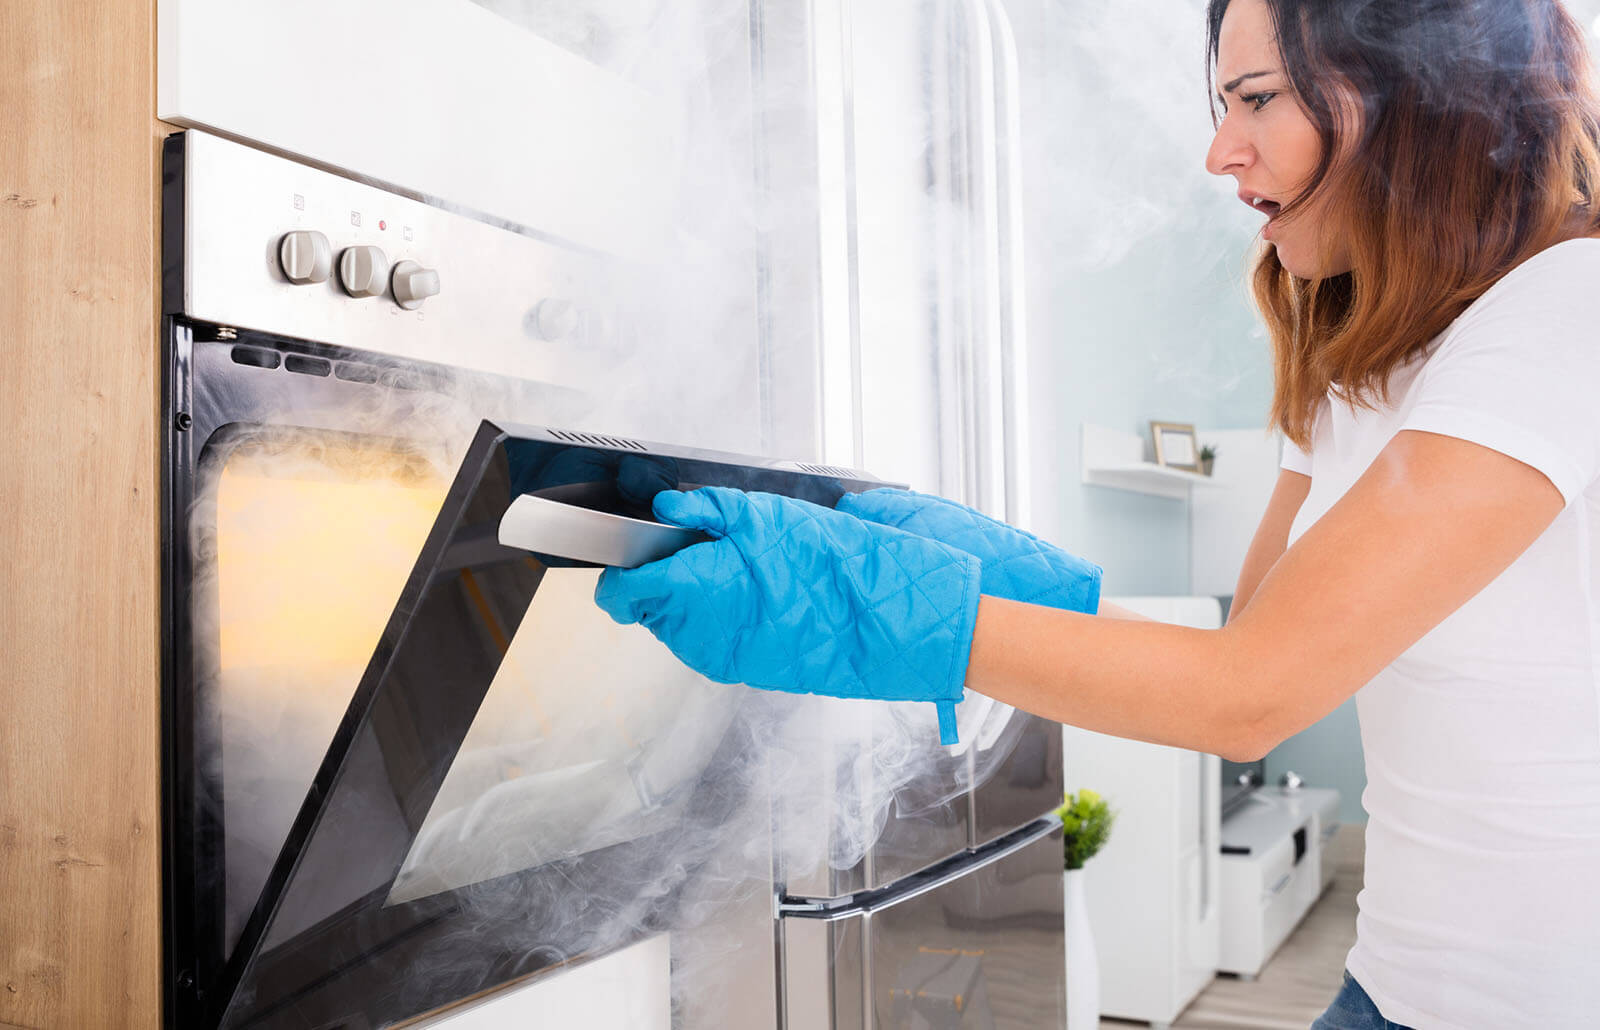 How to Remove Melted Plastic From an Oven (Safely)